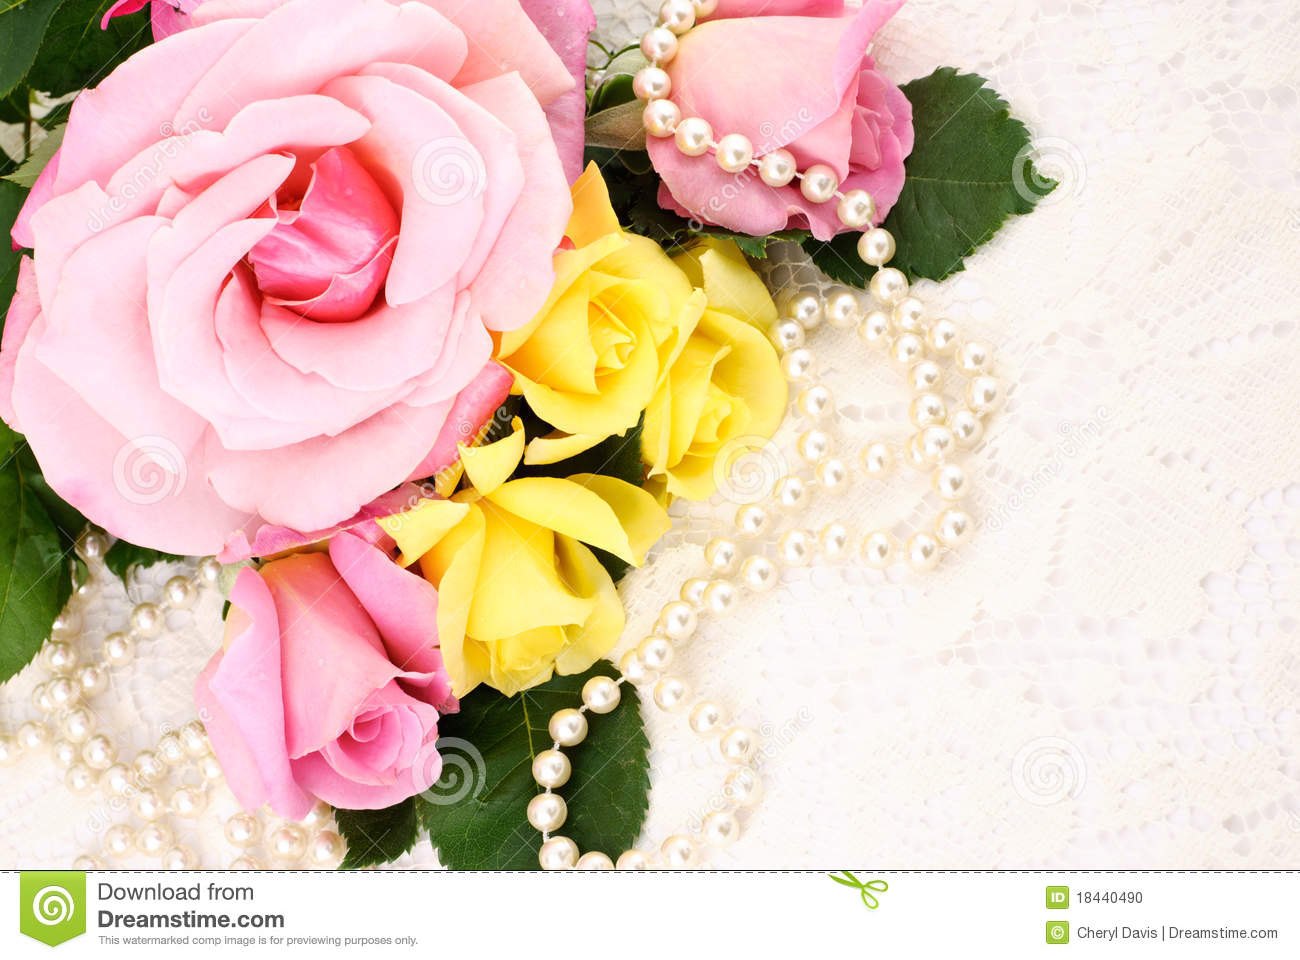 Roses And Pearls Stock Photo - Image: 18440490